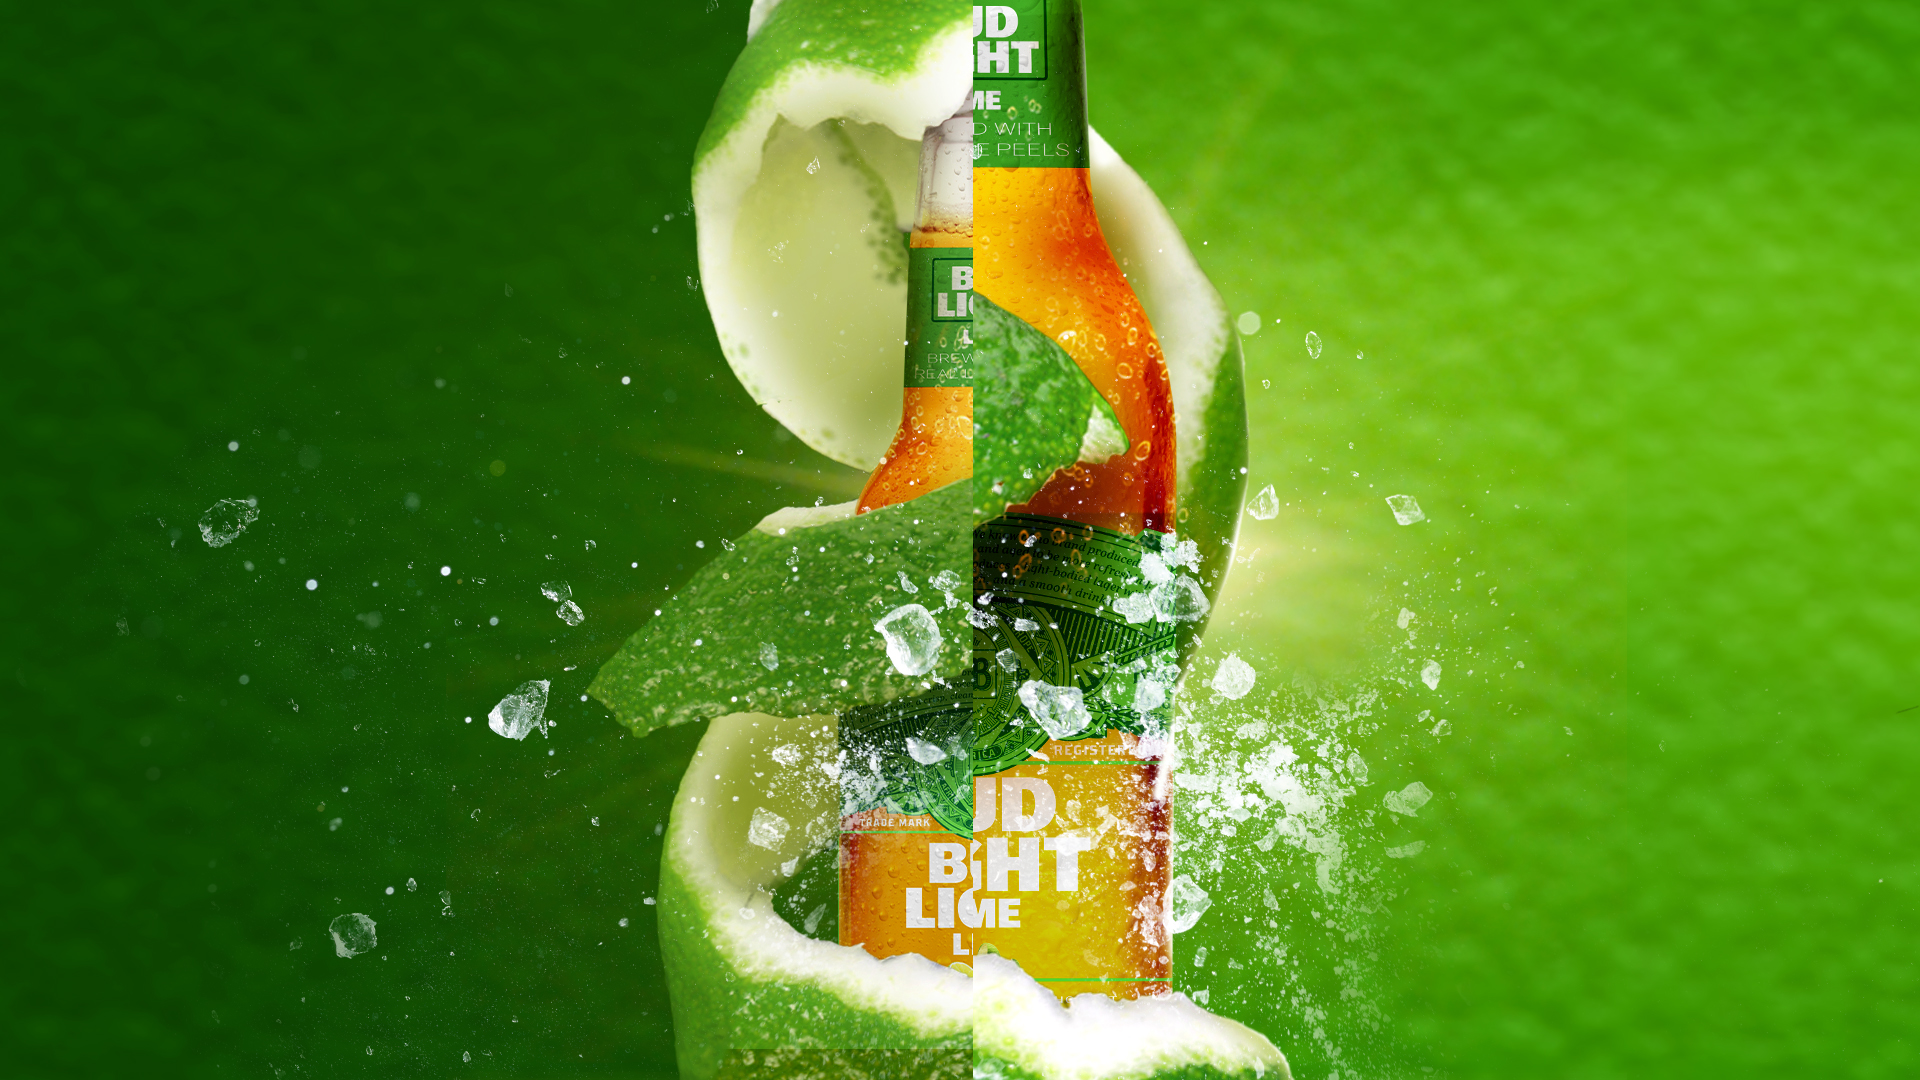 budlight_lime_v02.jpg